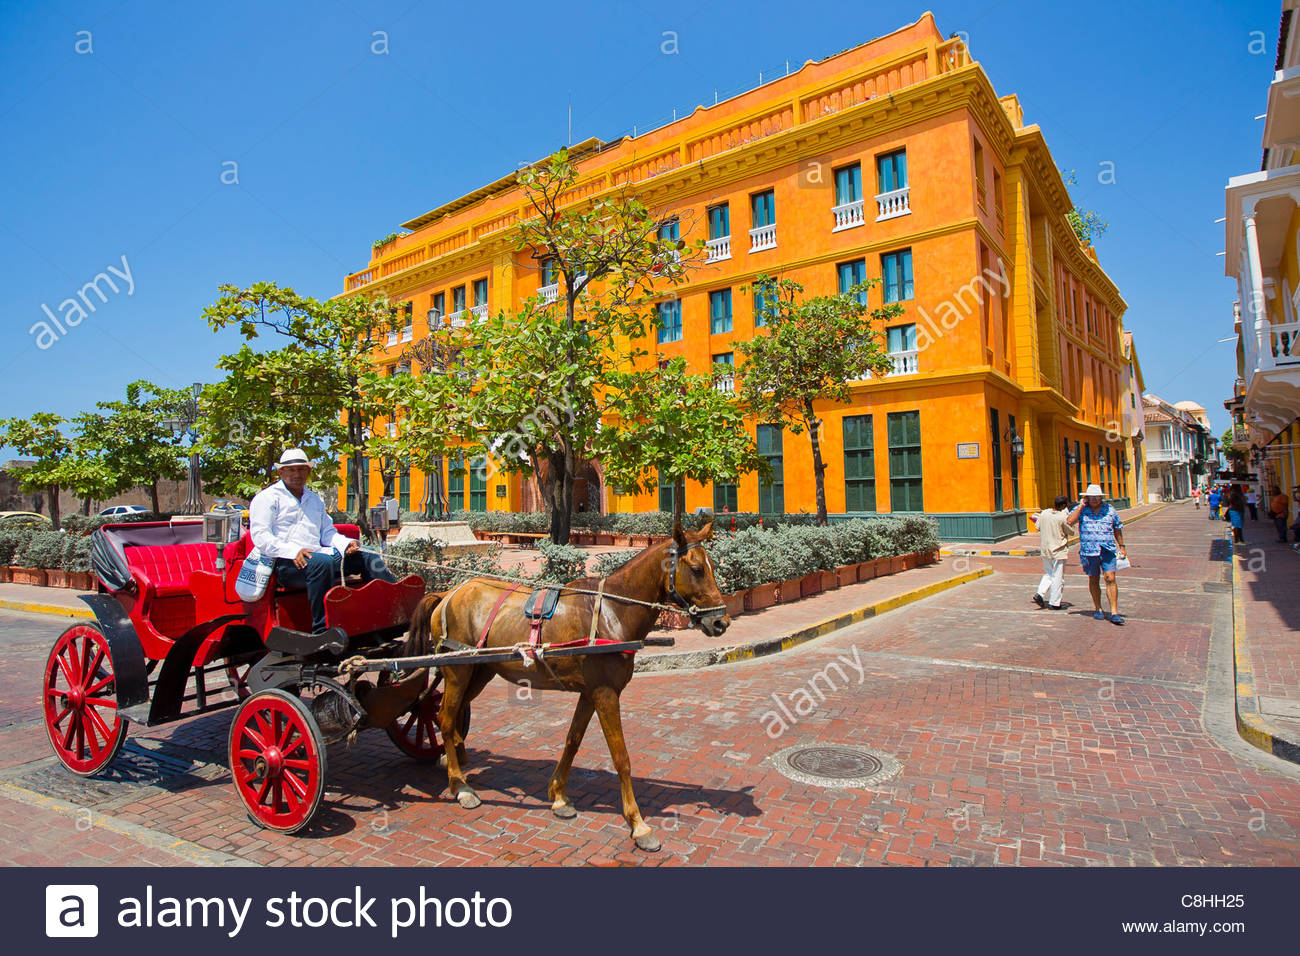 Old-fashioned horse and buggy rides in the Walled City. - Stock Image